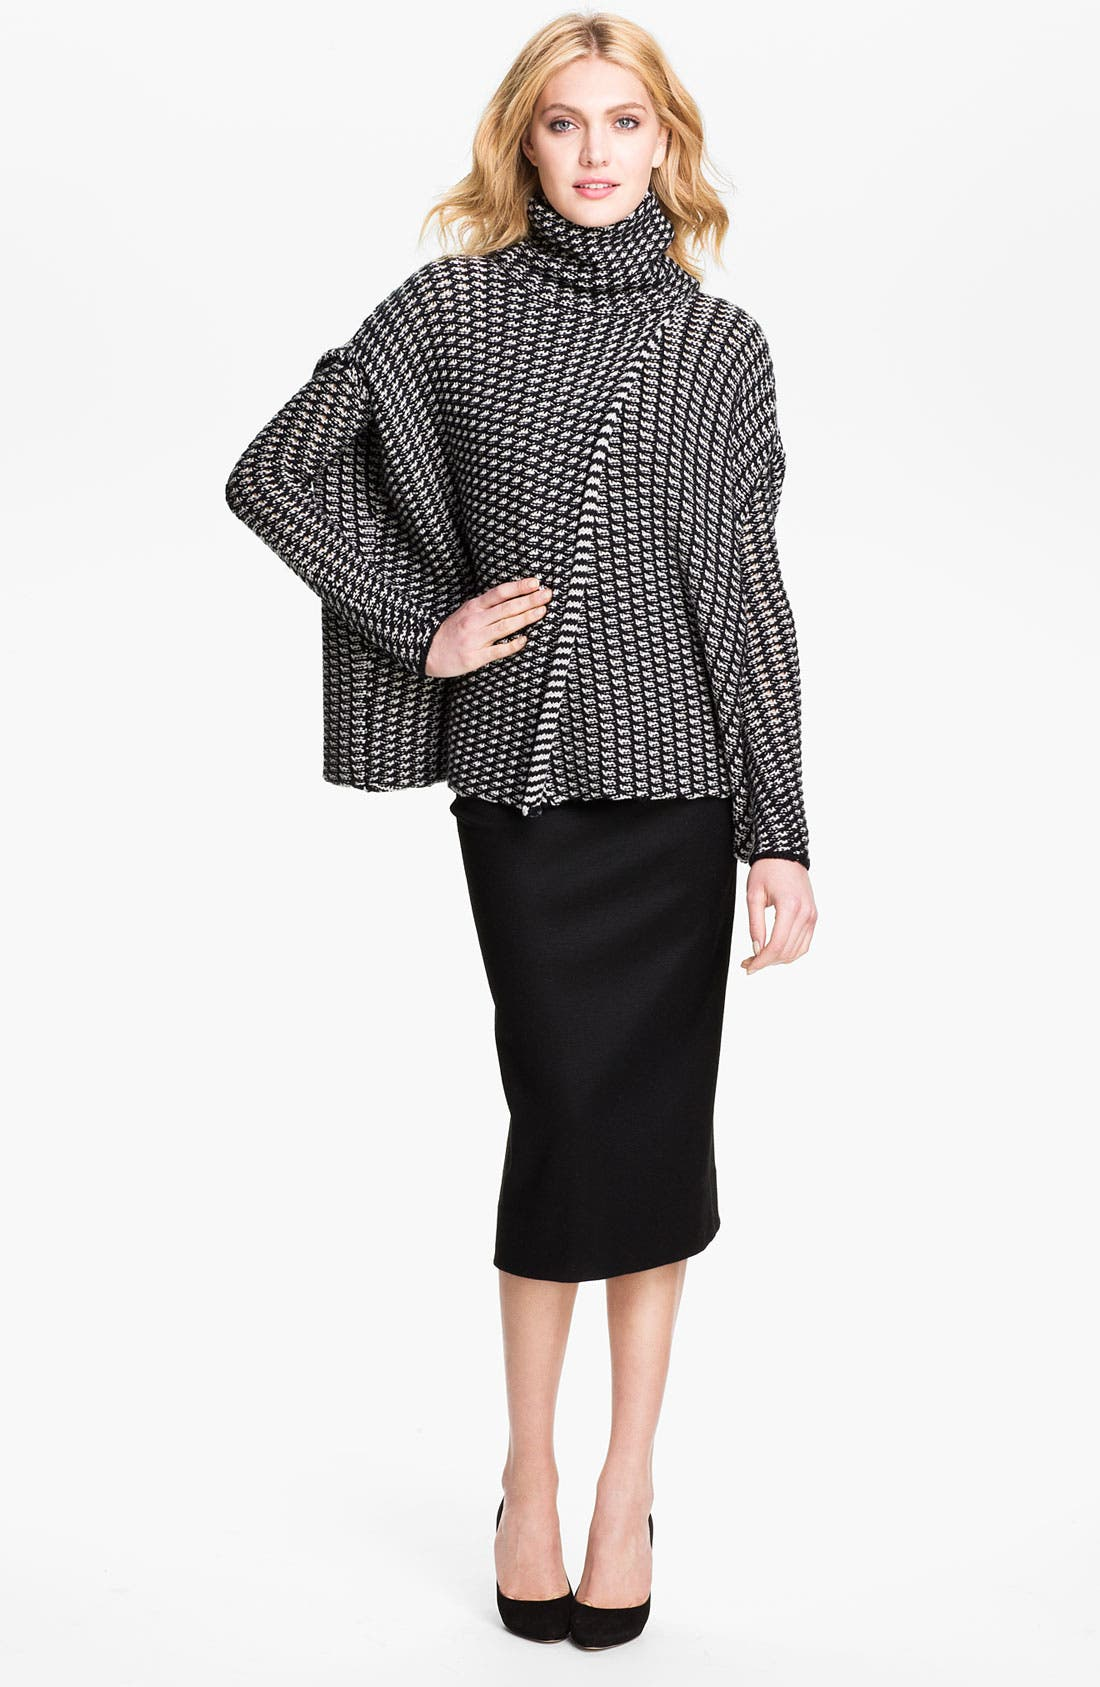 Alternate Image 1 Selected - Diane von Furstenberg 'Ahiga' Sweater Cape